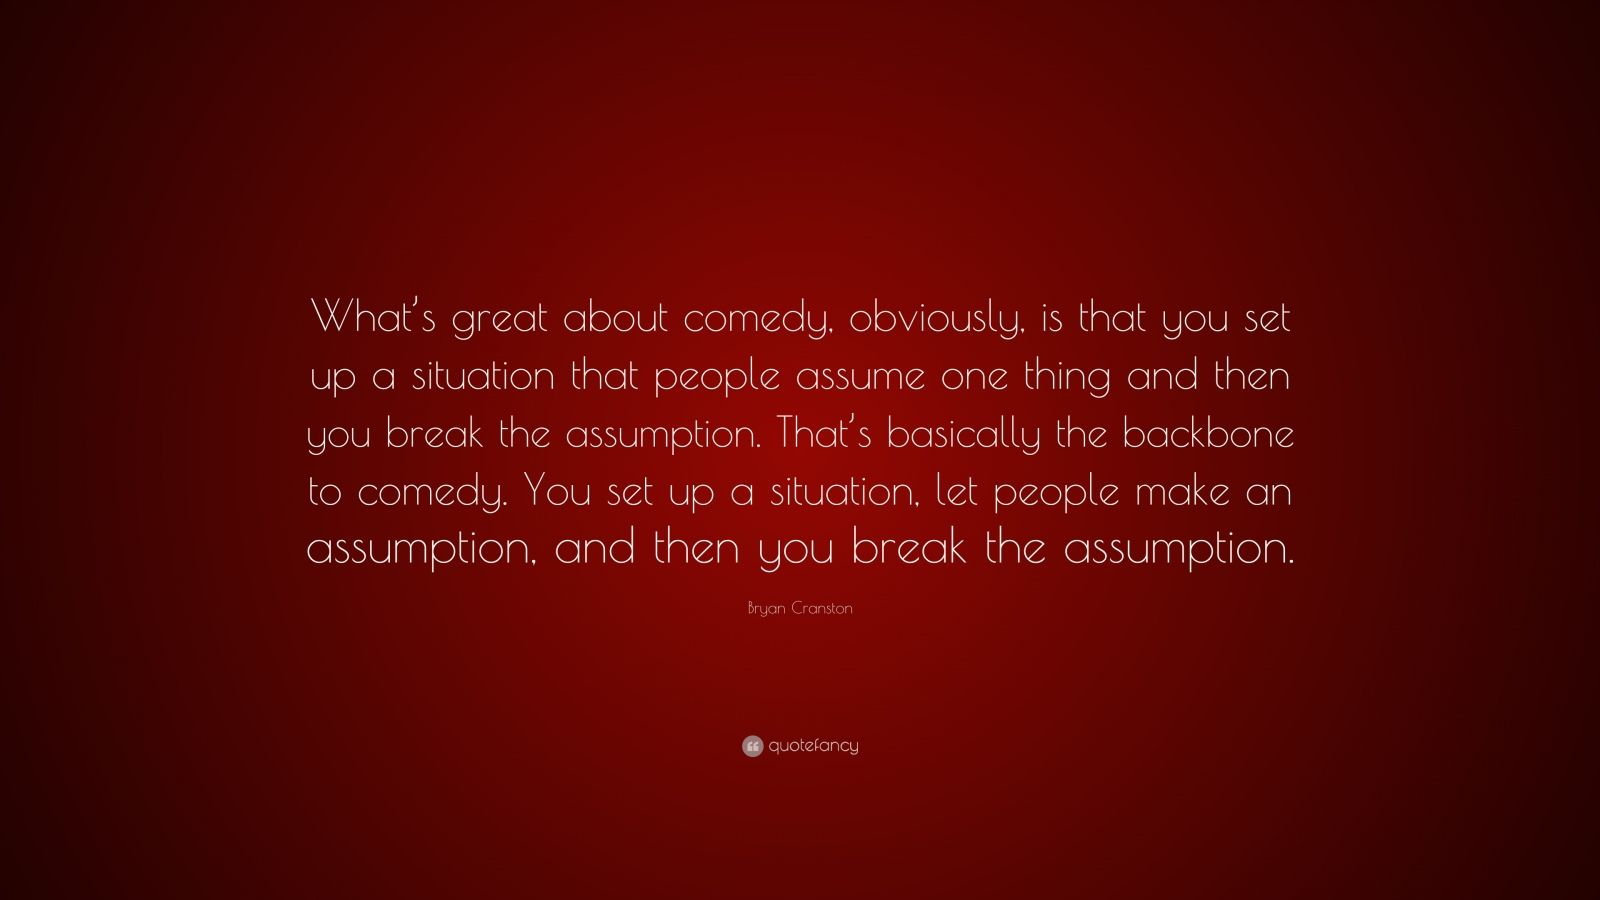 """Bryan Cranston Quote: """"What's great about comedy, obviously, is that you set up a situation that people assume one thing and then you break the assumption. That's basically the backbone to comedy. You set up a situation, let people make an assumption, and then you break the assumption."""""""